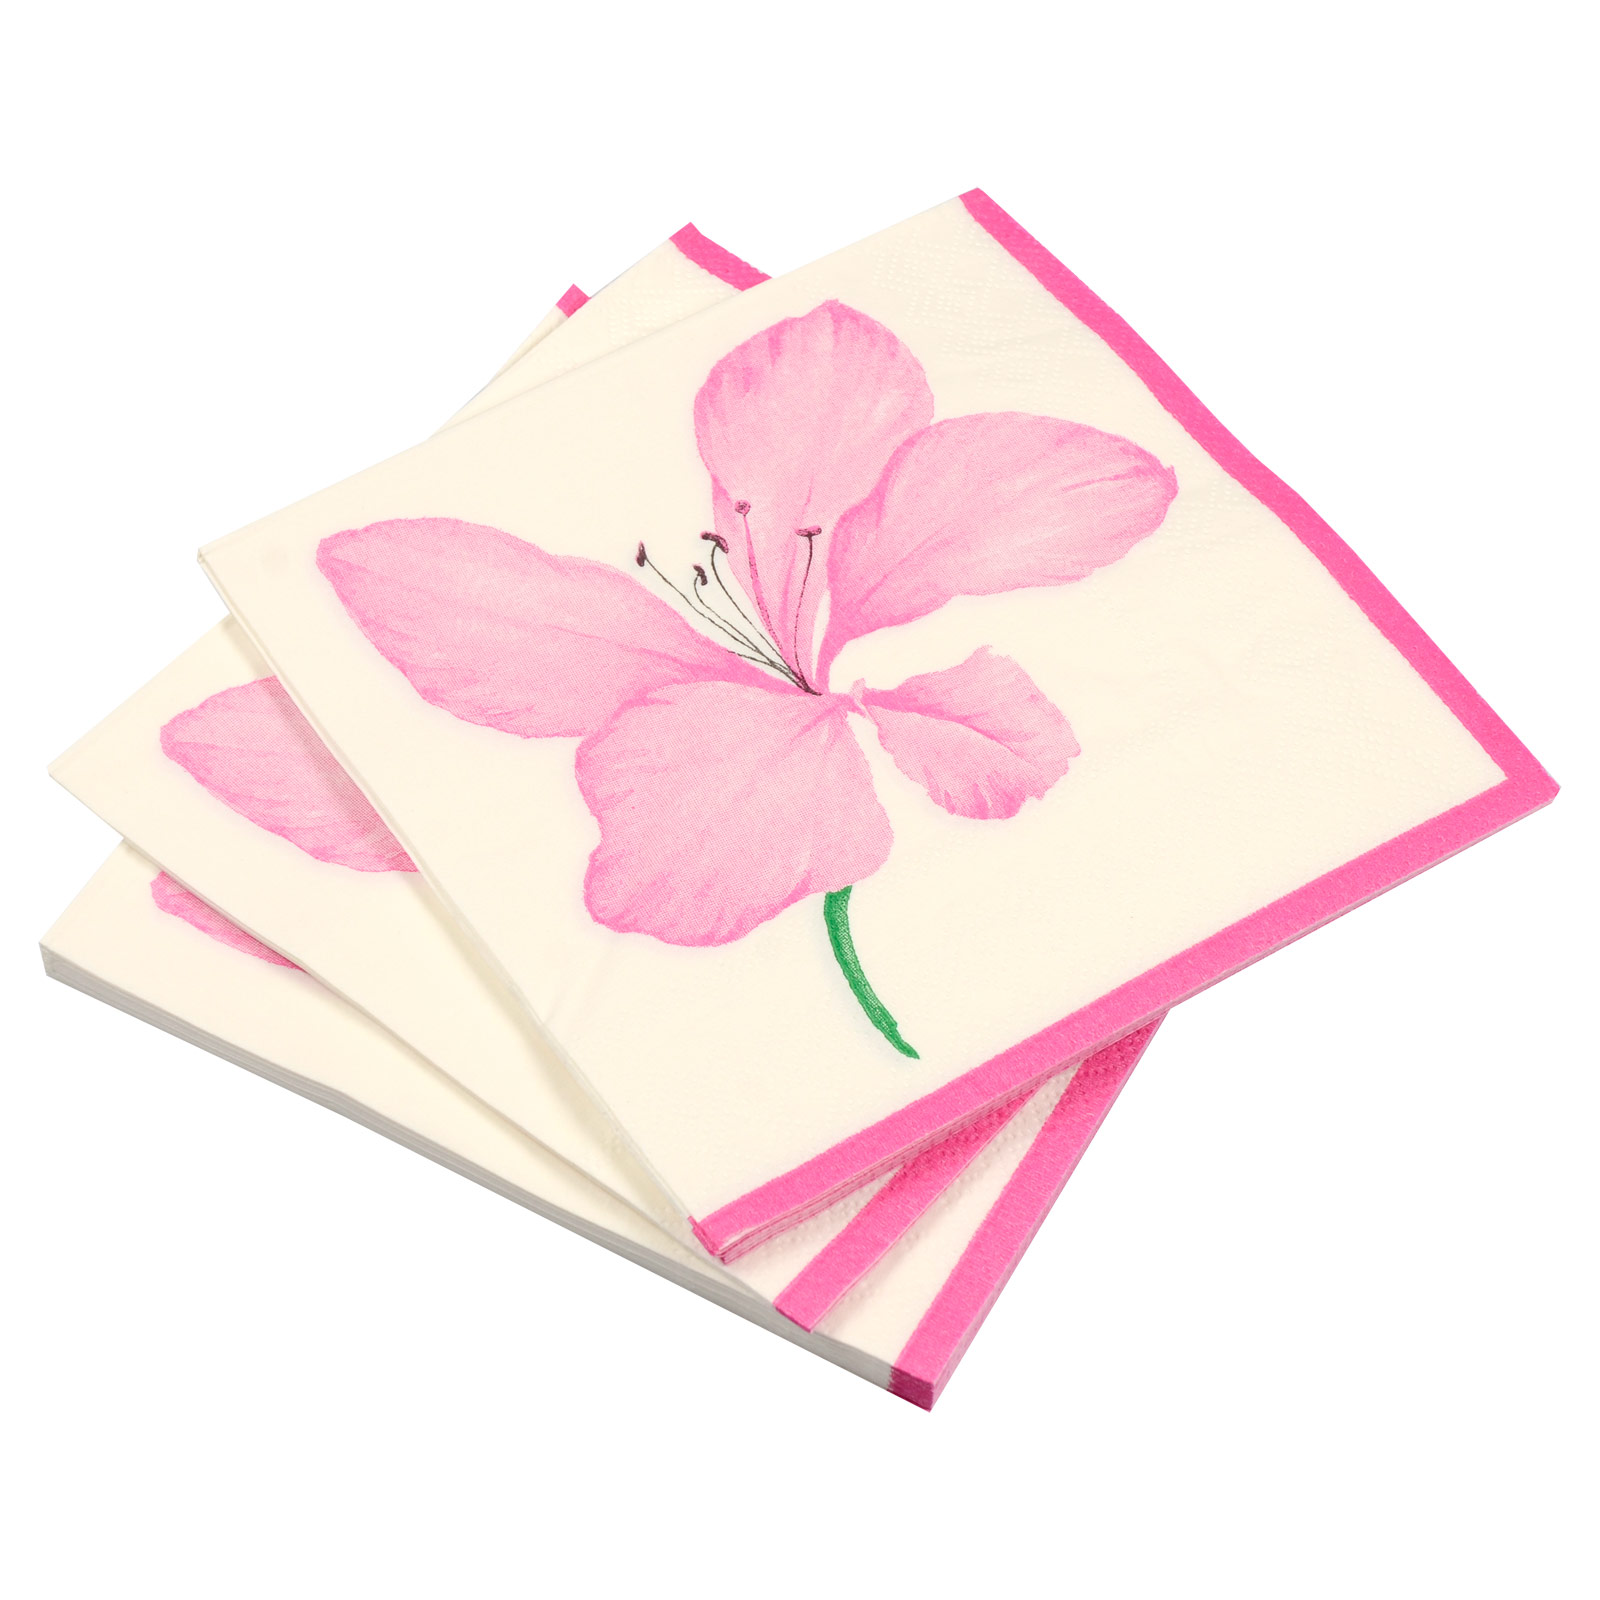 paper party napkins Our collection of colored paper napkins are available in exciting range of solid colors, made from 2-ply paper they are soft to touch and are highly absorbent.